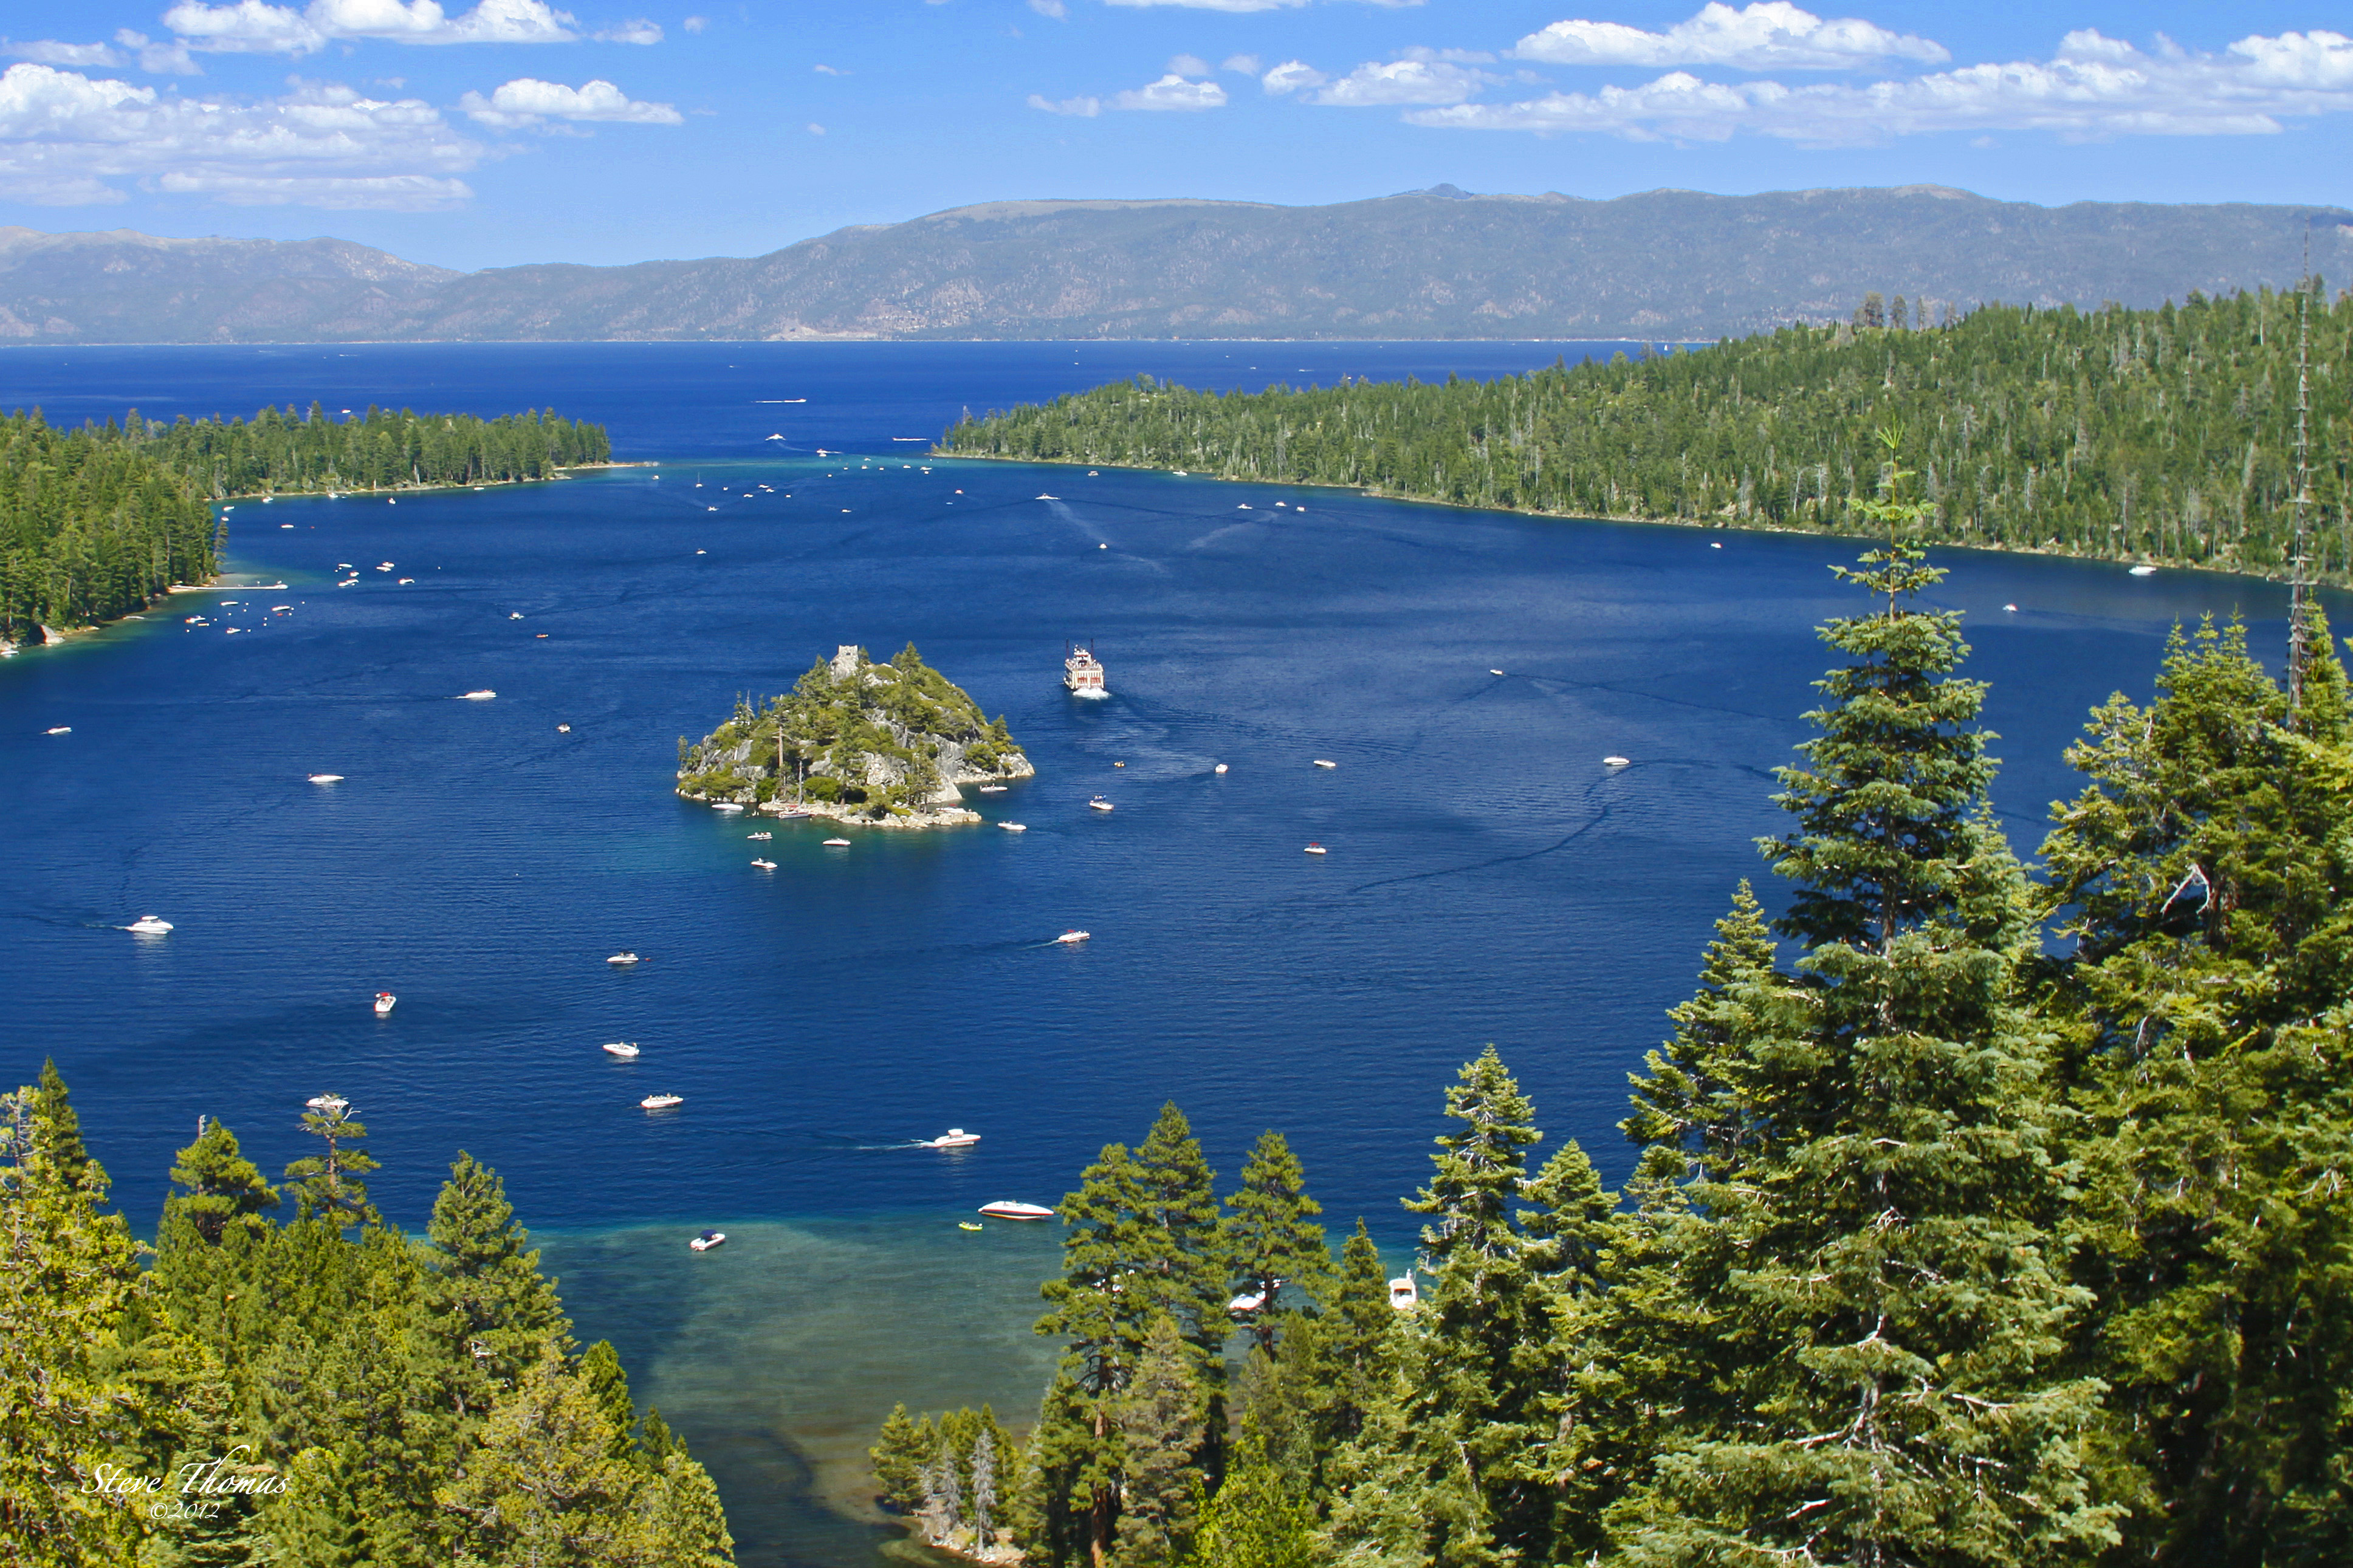 Clearest Water In The World Day Two Lake Tahoe Photographyfree4all S Blog